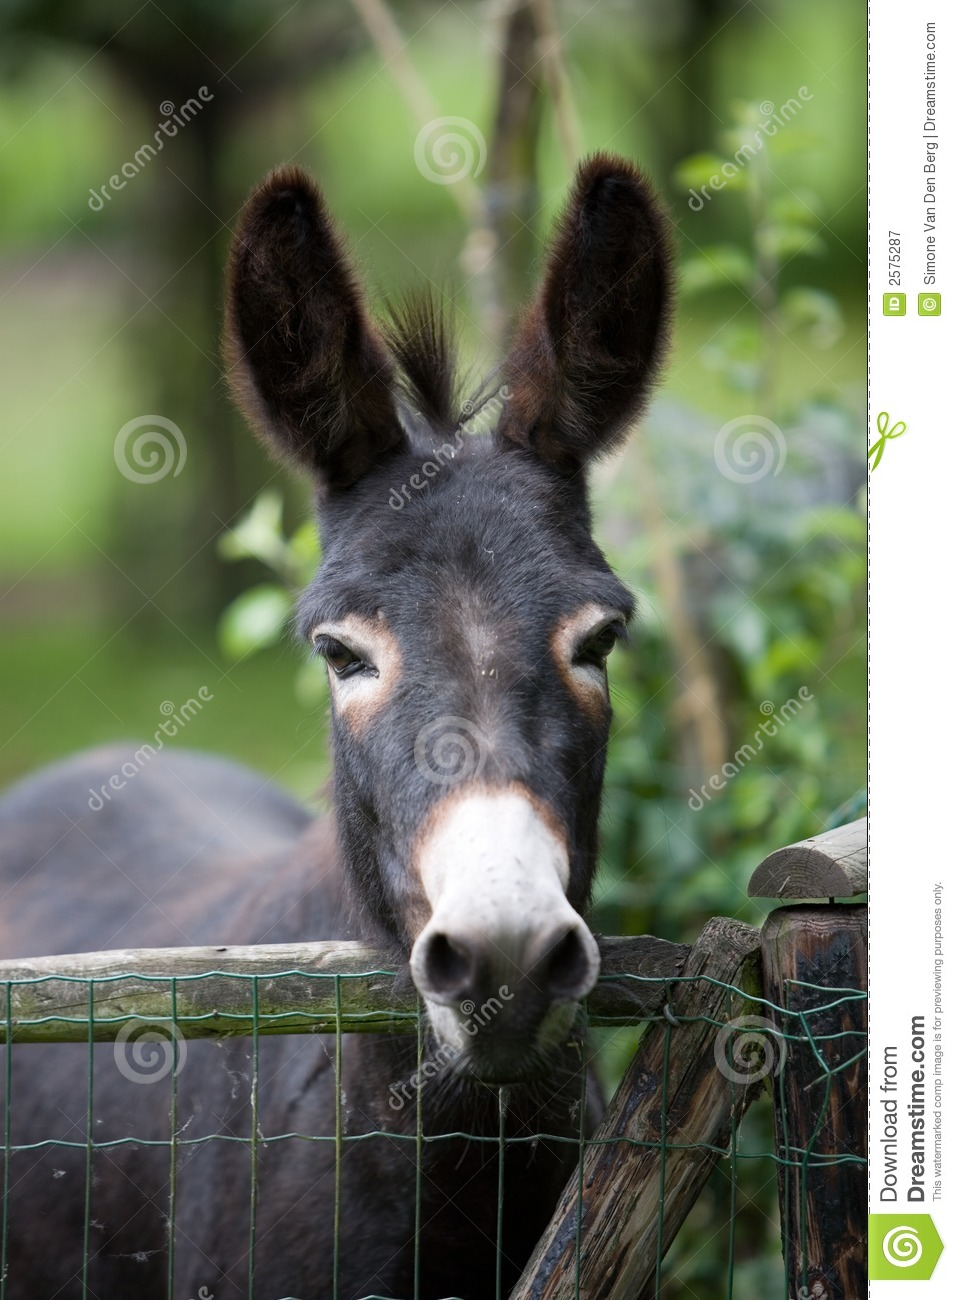 Cute Donkey Royalty Free Stock Photography Image 2575287